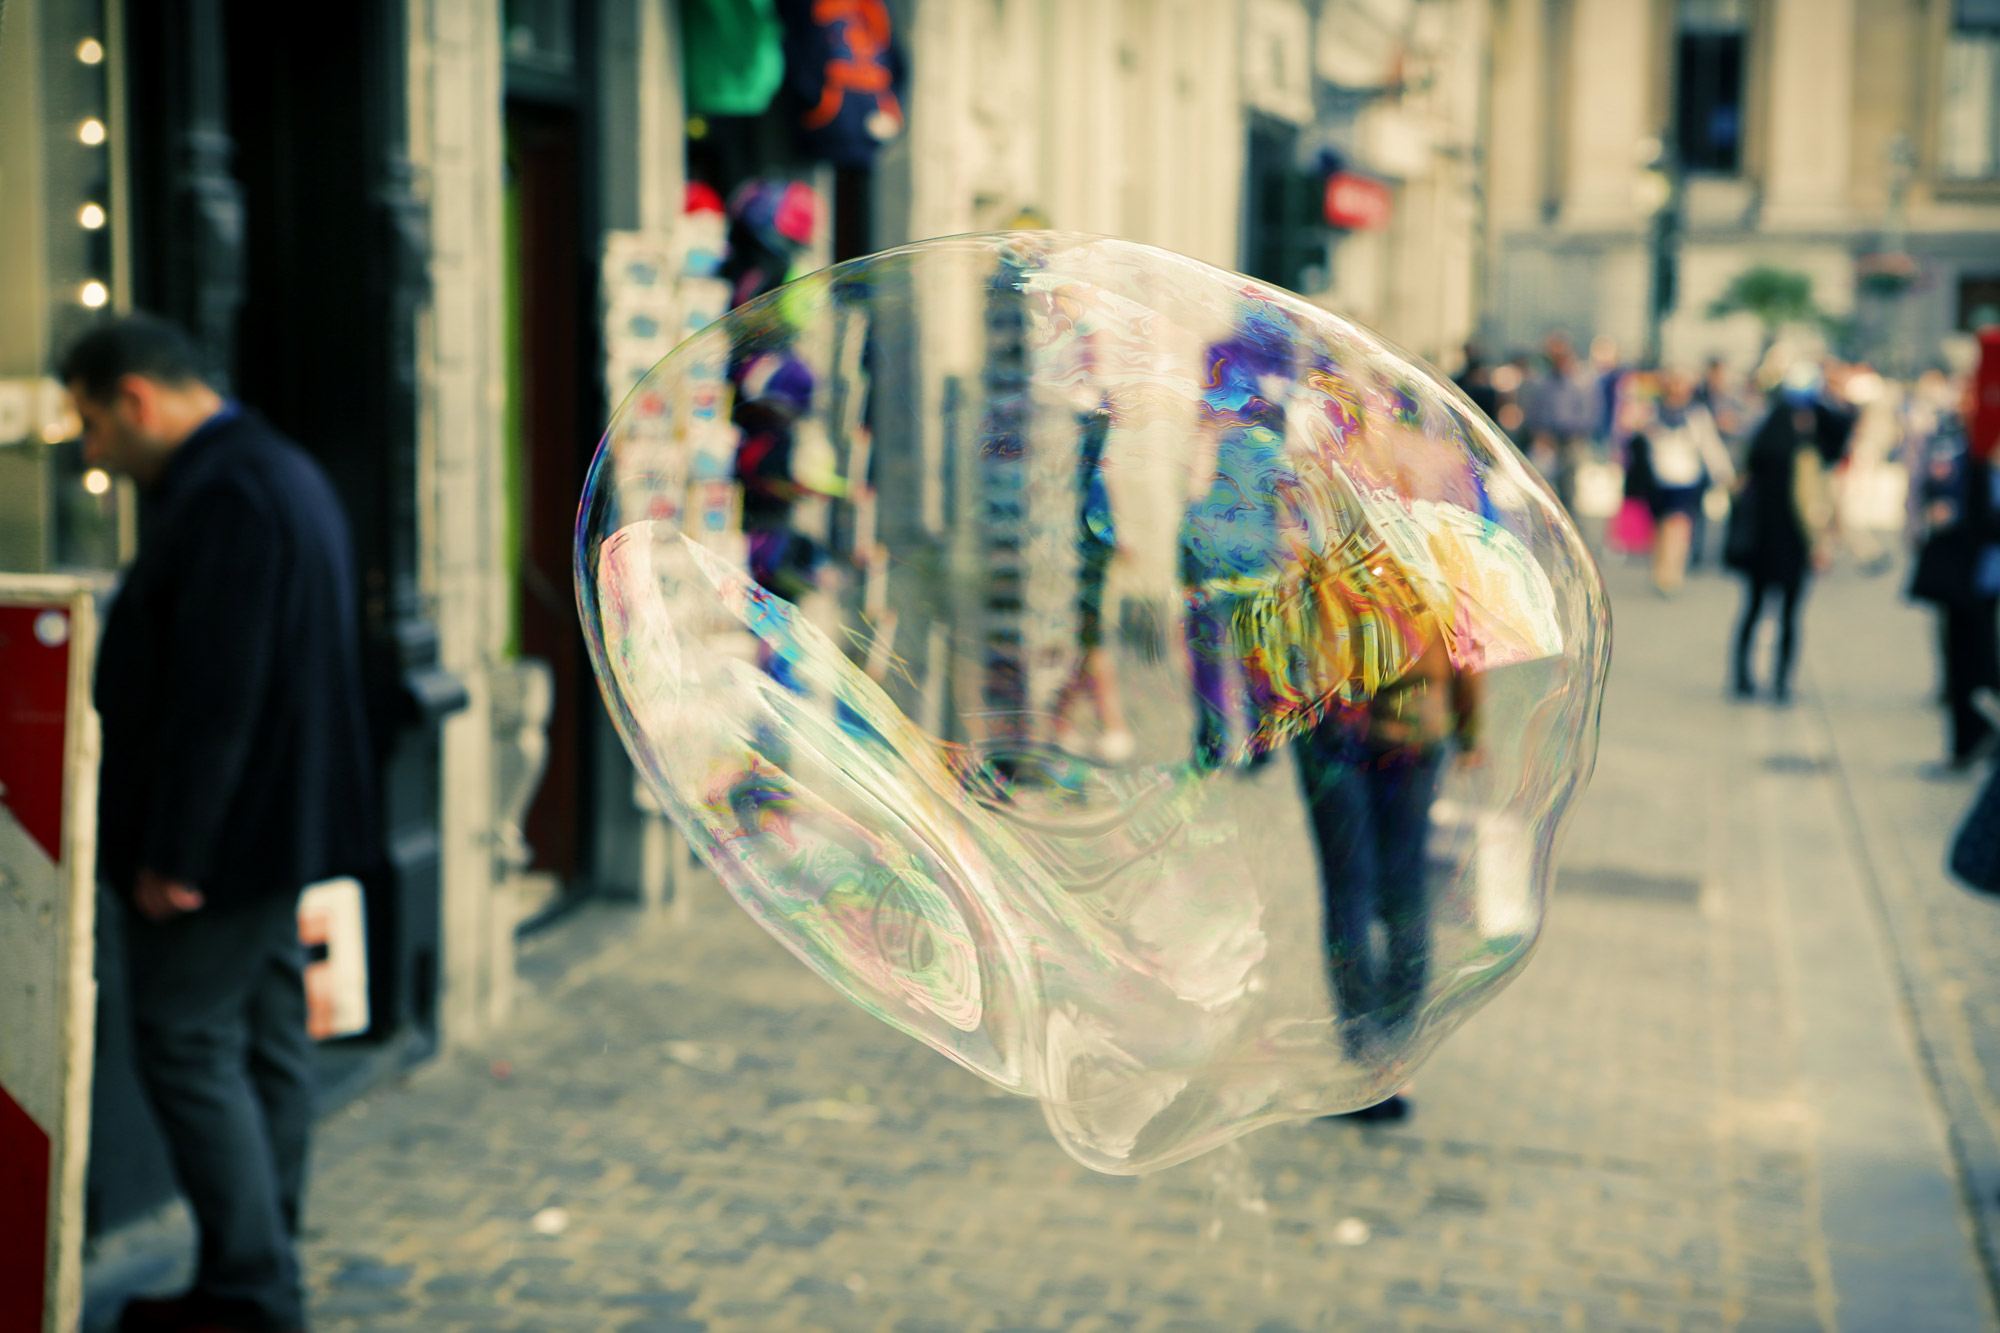 large bubble blown up on a street